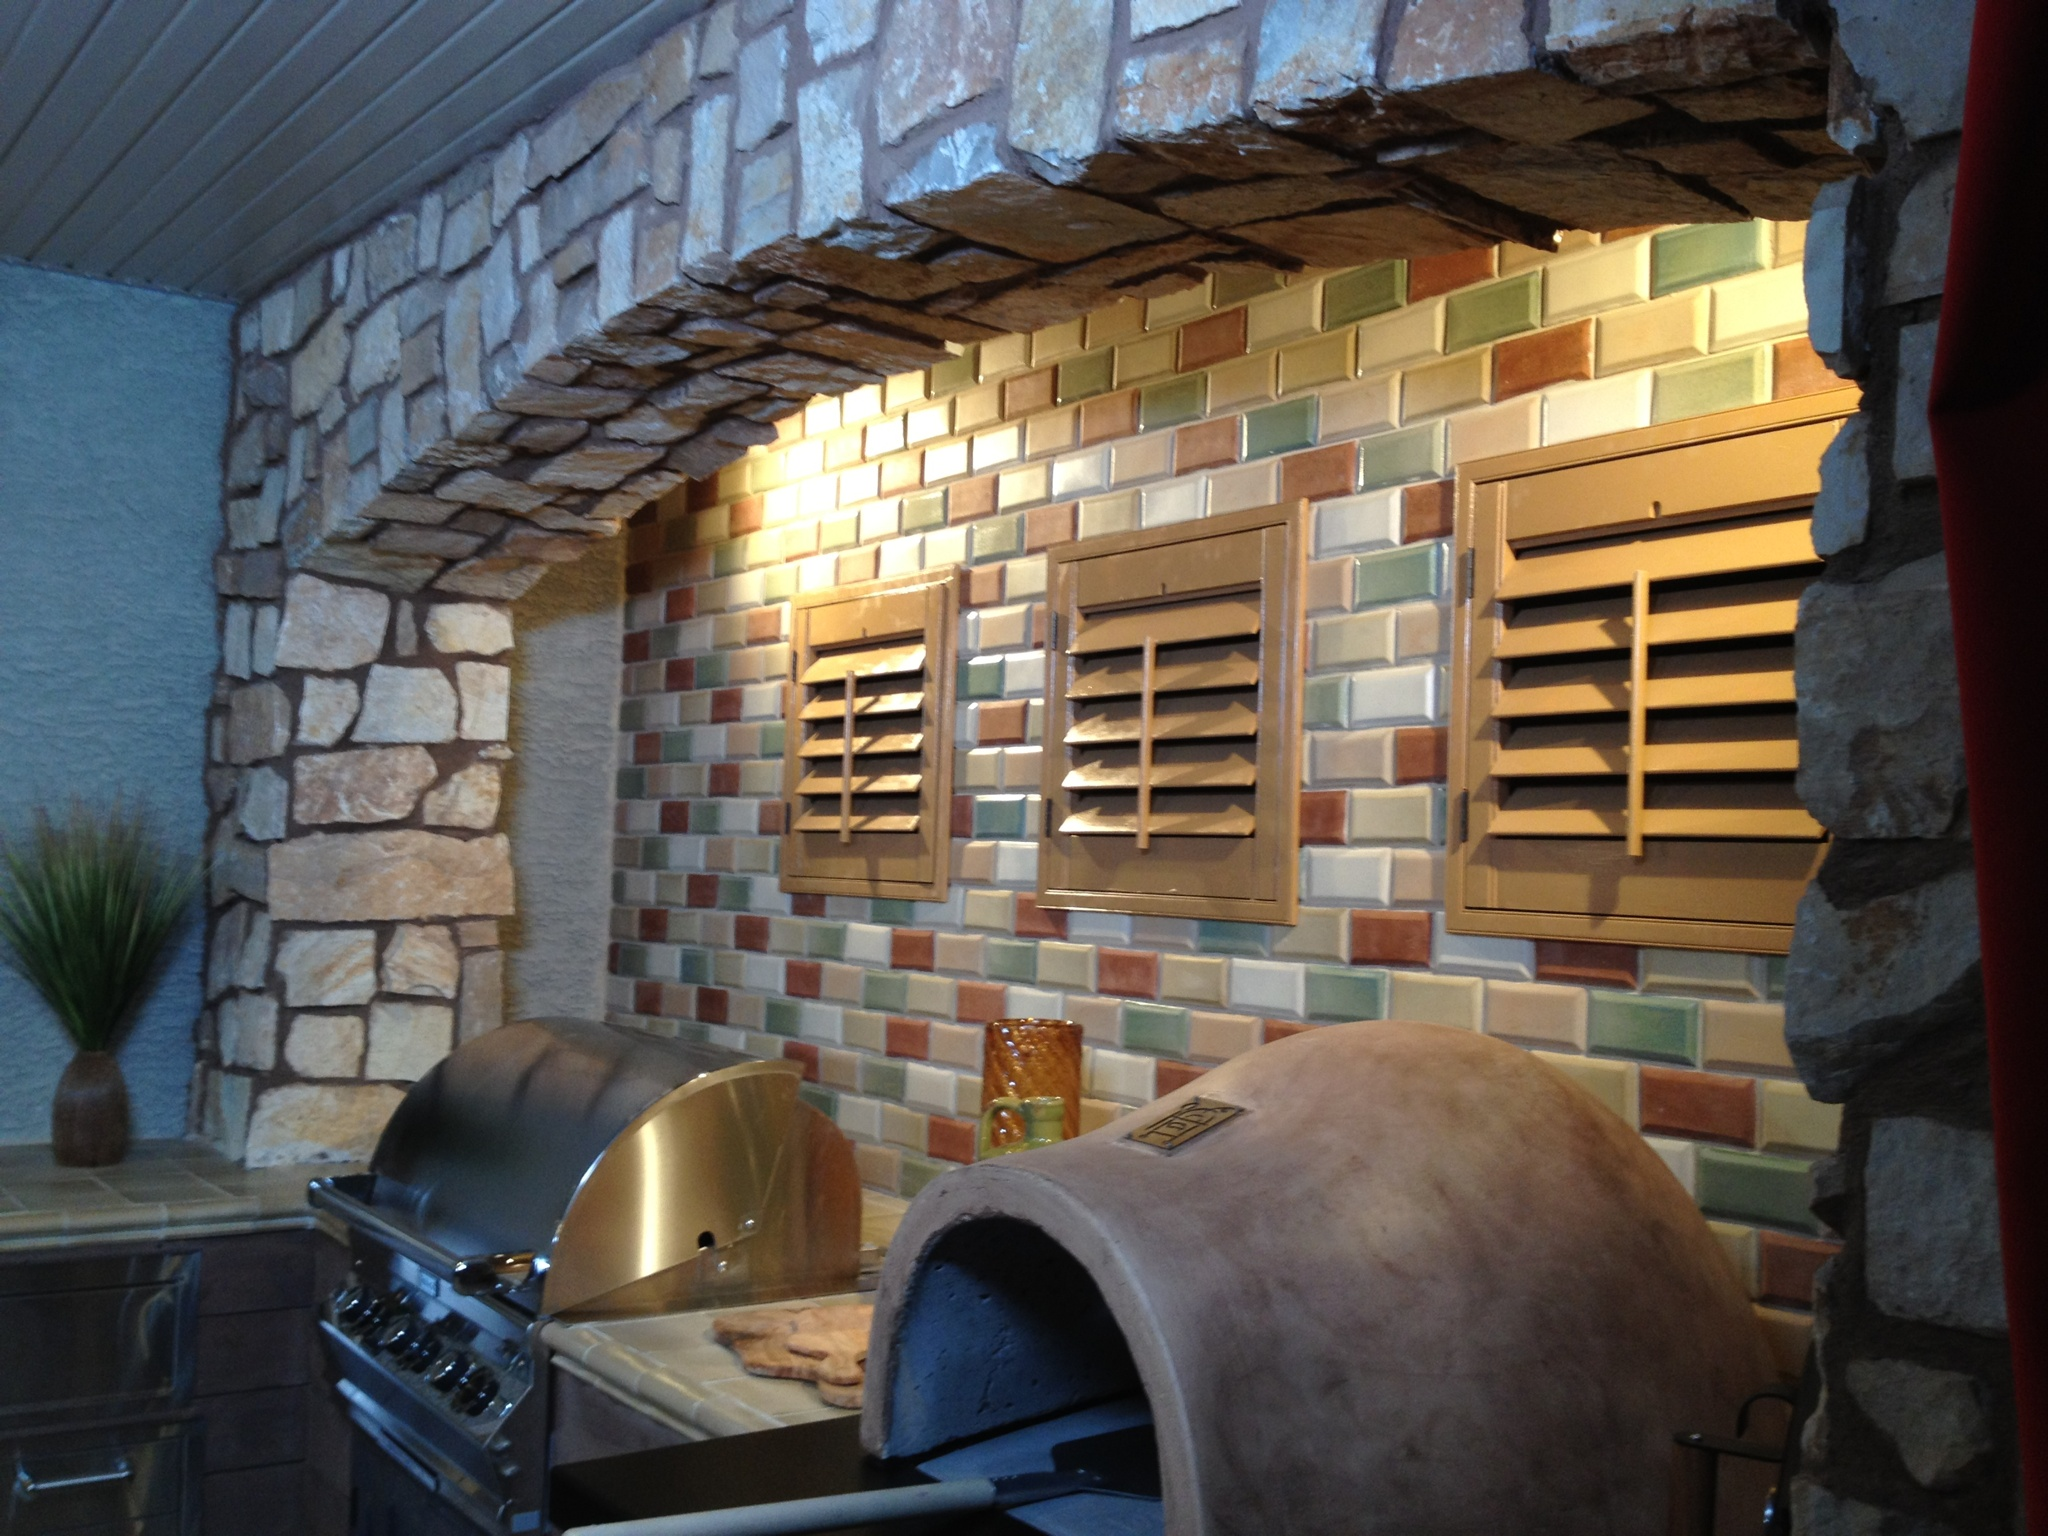 grills for outdoor kitchens in Las vegas